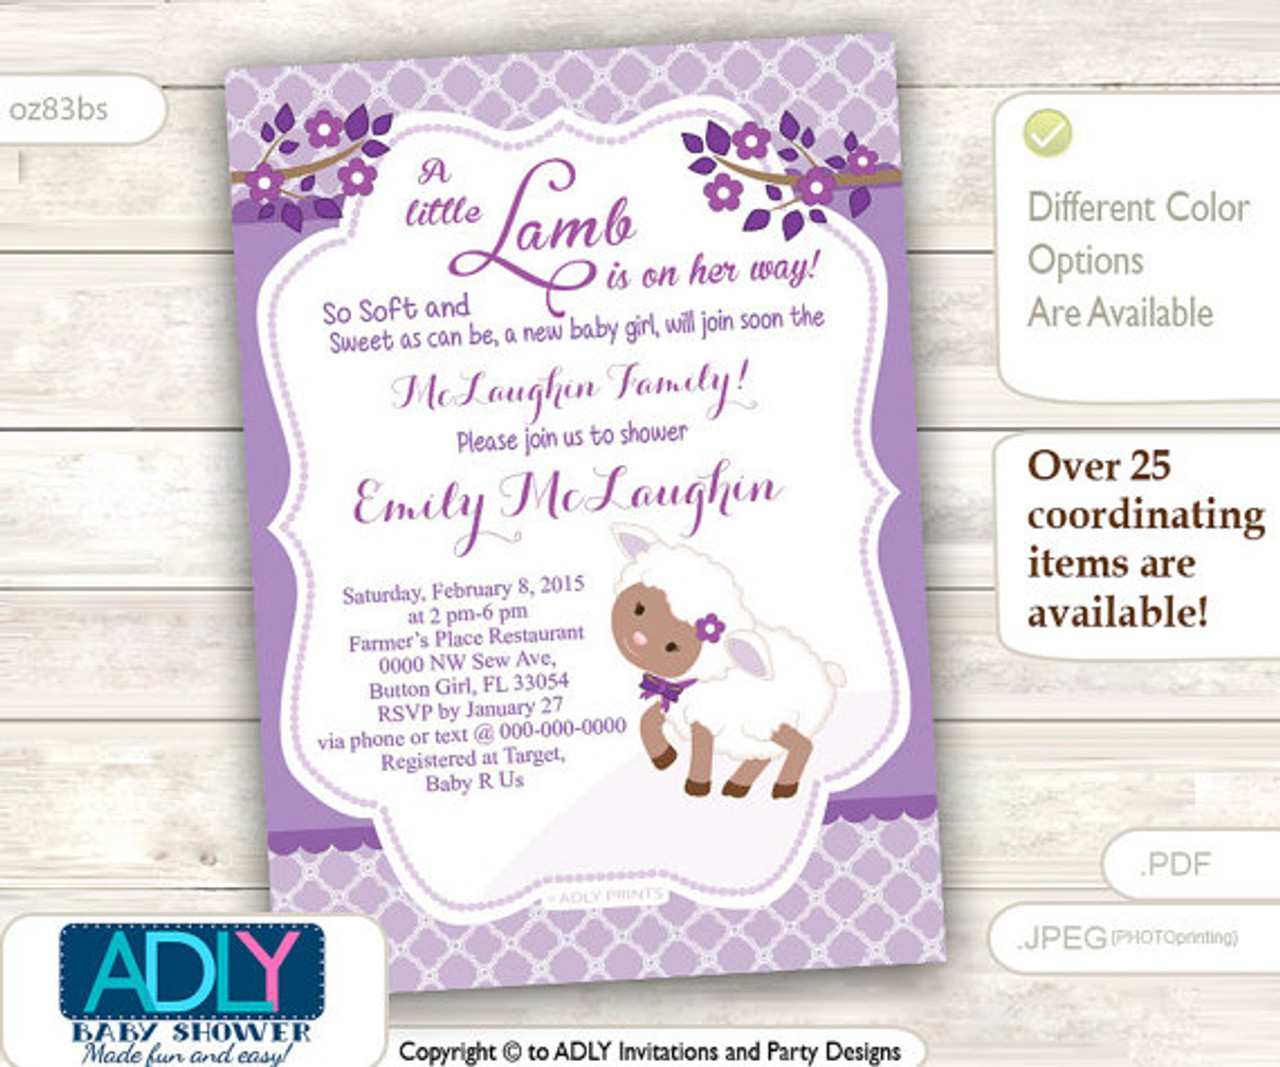 photograph about Printable Girl Baby Shower Invitations named Crimson Very little Lamb African American Lady Boy or girl Shower Invitation for a Fresh Kid Woman, Printable Sheep/Lamb Card, brown,lavender